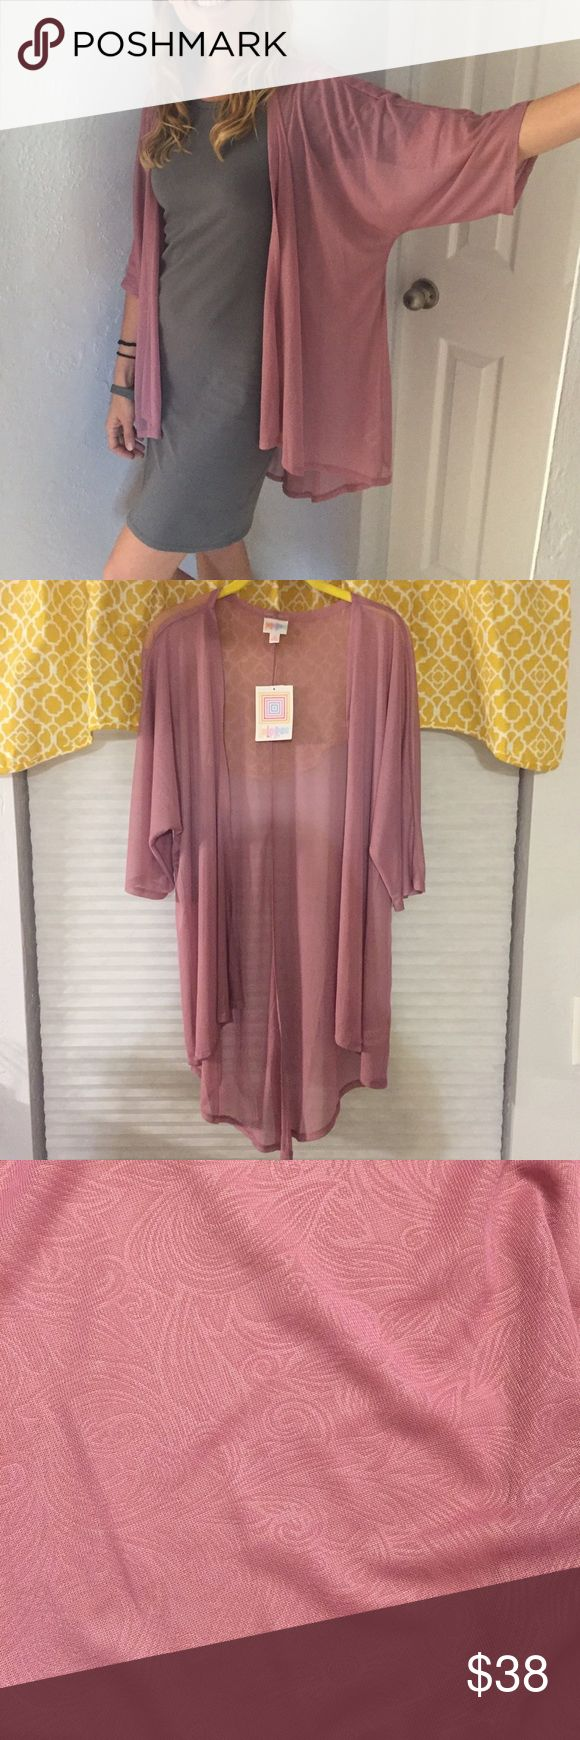 Beautiful sheer Lindsay kimono, new with tags! Pretty mauve color LuLaRoe Lindsay kimono. Sheer mauve with a lovely swirly flower pattern. Only tried on! I love this, it's just not my color. 😕 Dresses up any outfit! Leave loose or tie at the waist. LuLaRoe Tops